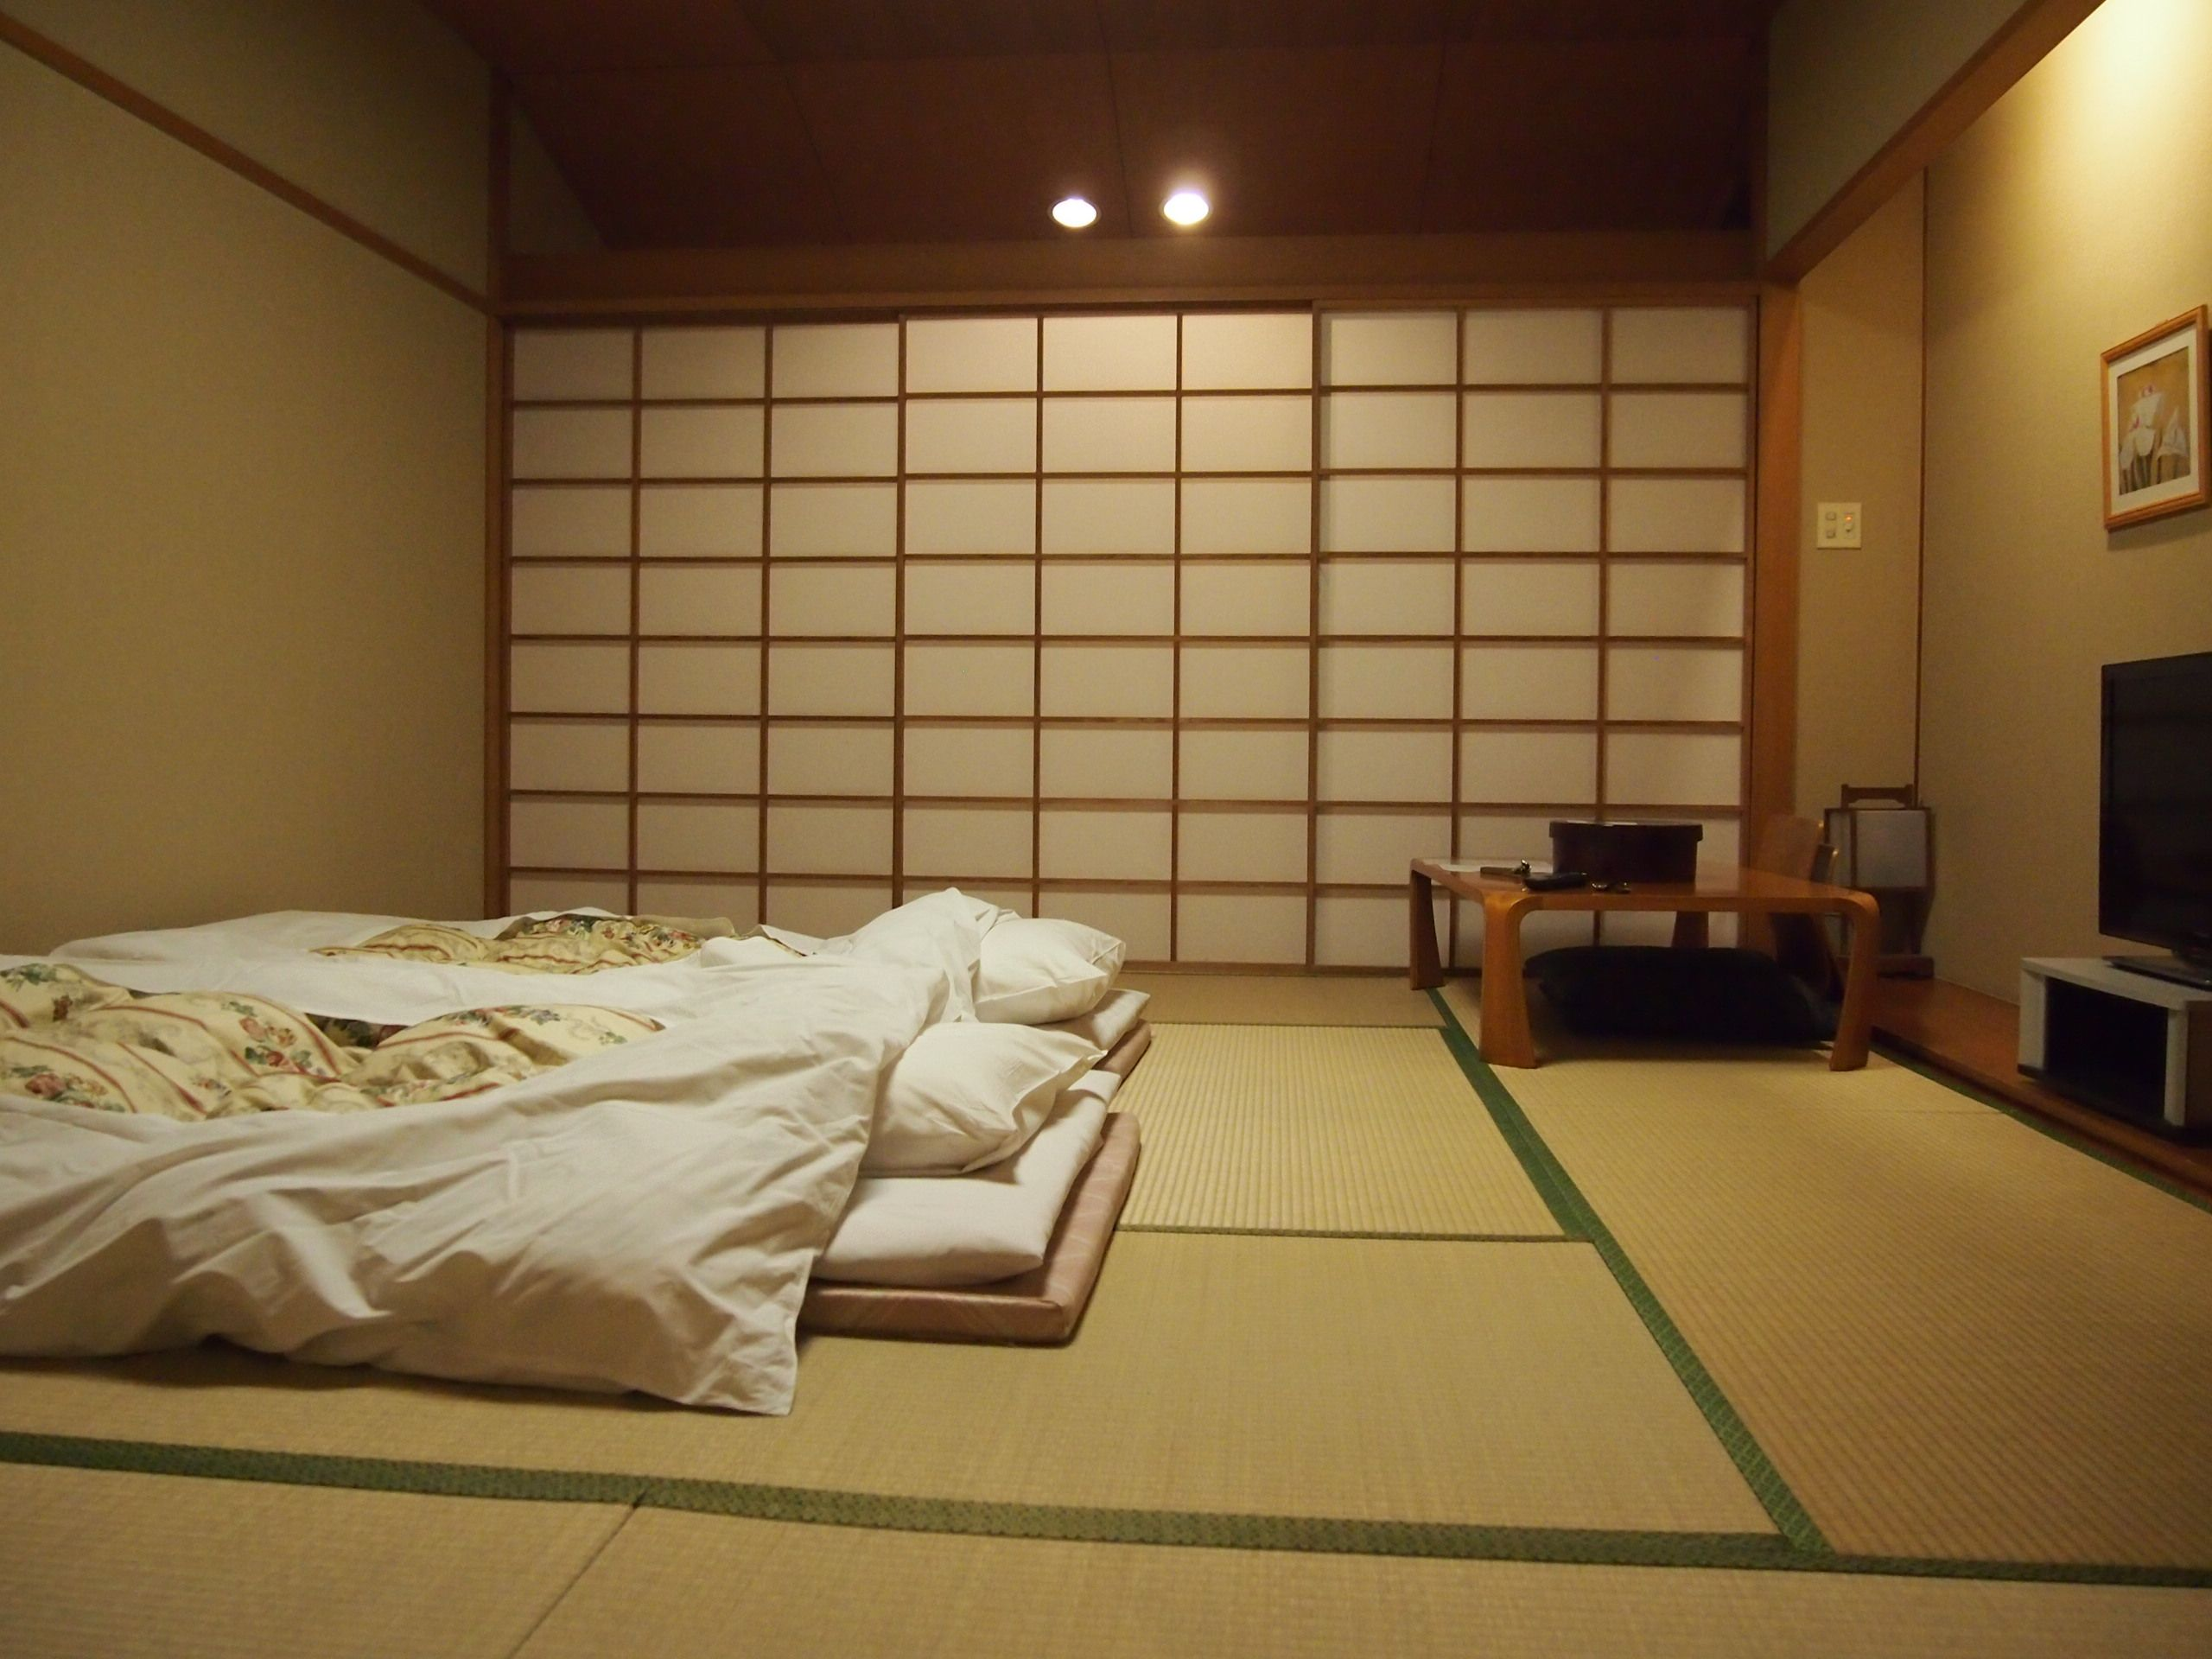 18 best bedroom images on Pinterest Bedroom designs Japanese